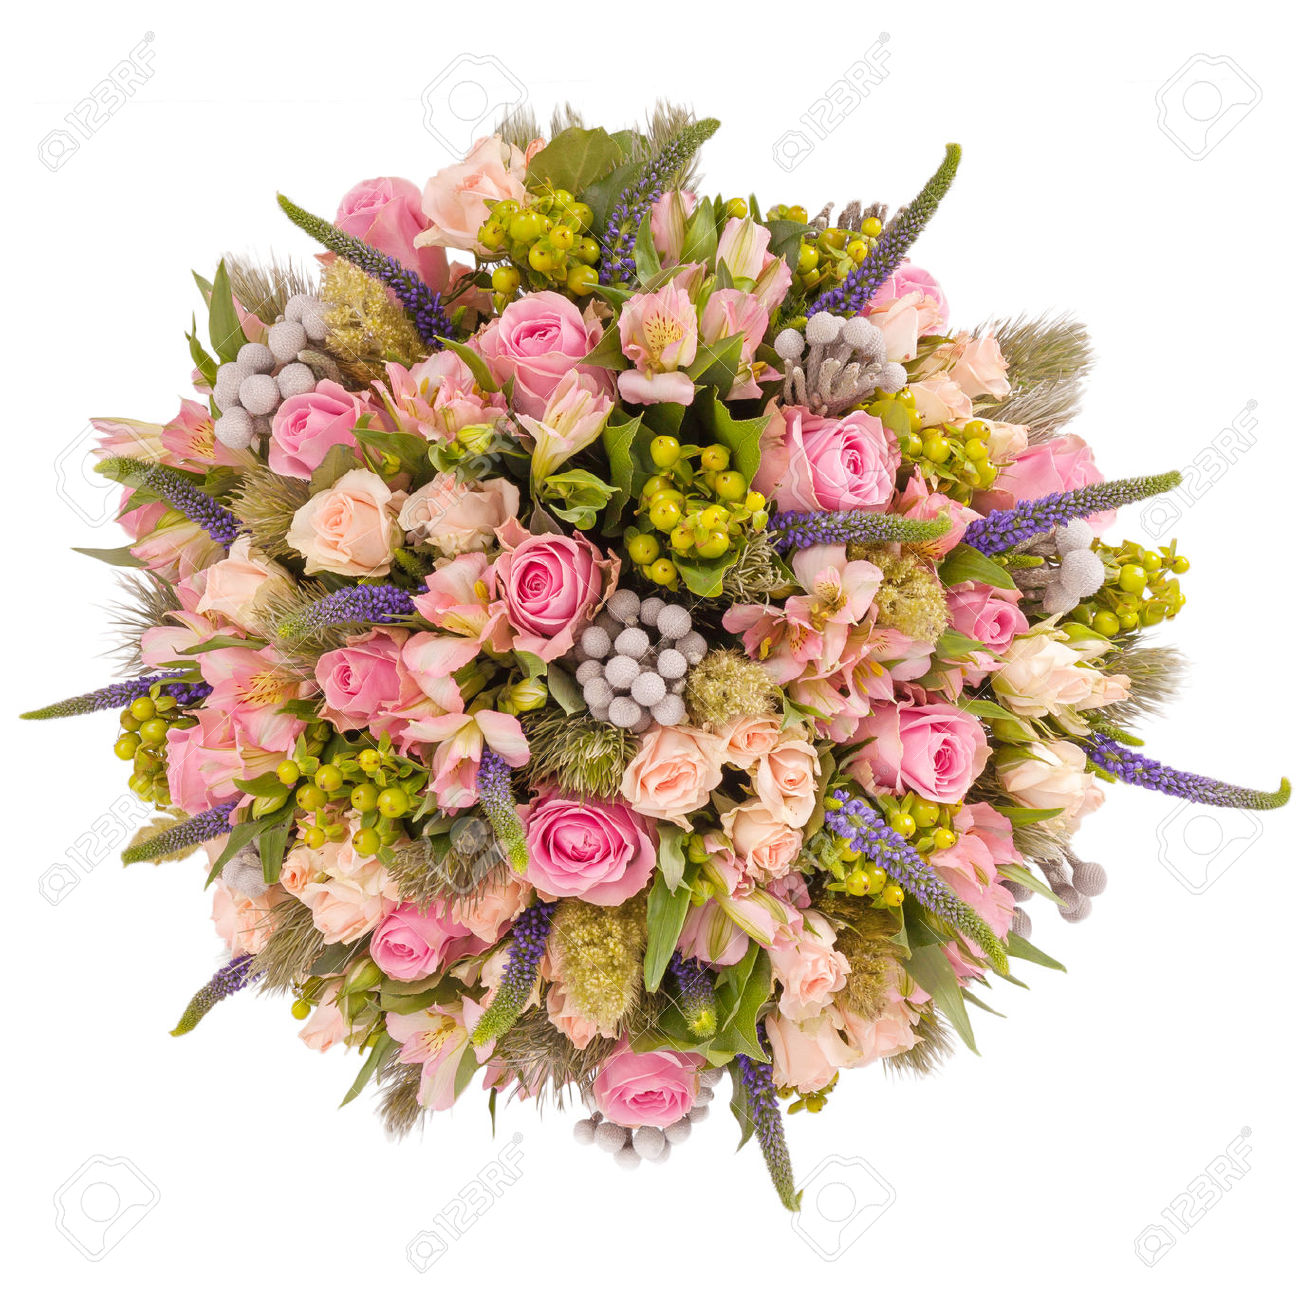 Bunches of flowers pictures free jpg stock Bouquet Of Flowers Top View Isolated On White. Stock Photo ... jpg stock